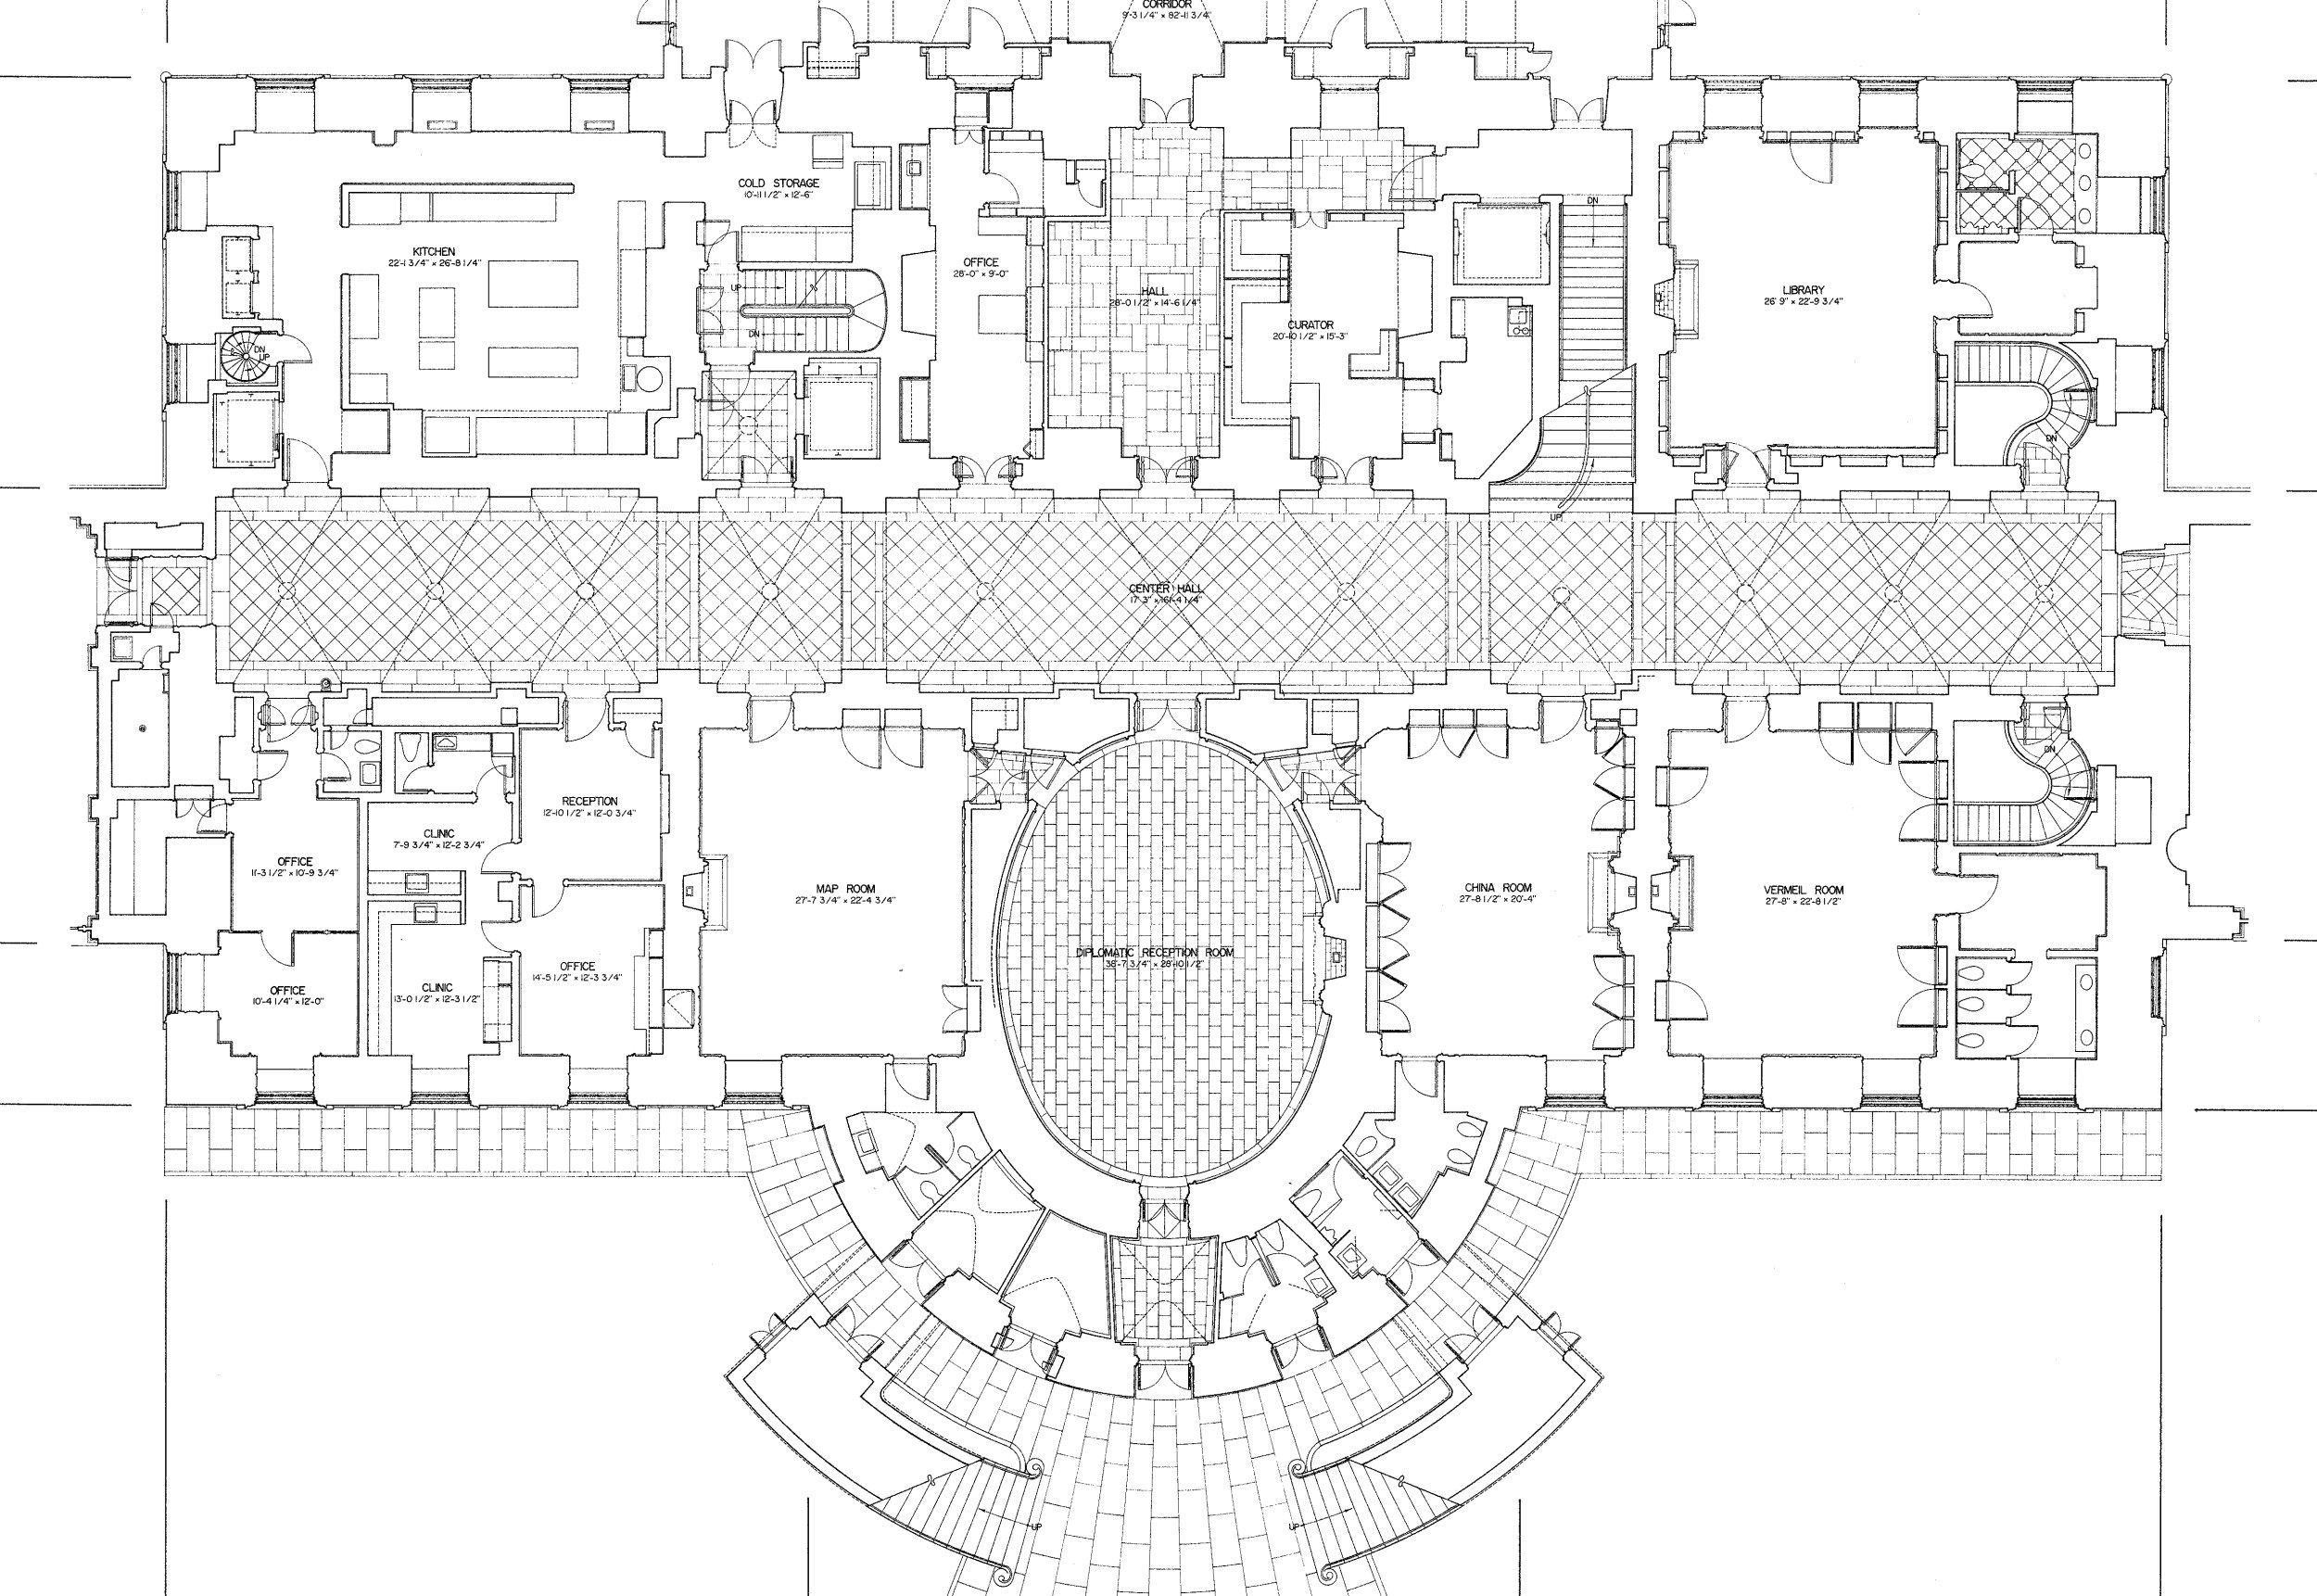 images about plan on Pinterest   White houses  Floor plans       images about plan on Pinterest   White houses  Floor plans and Agricultural science